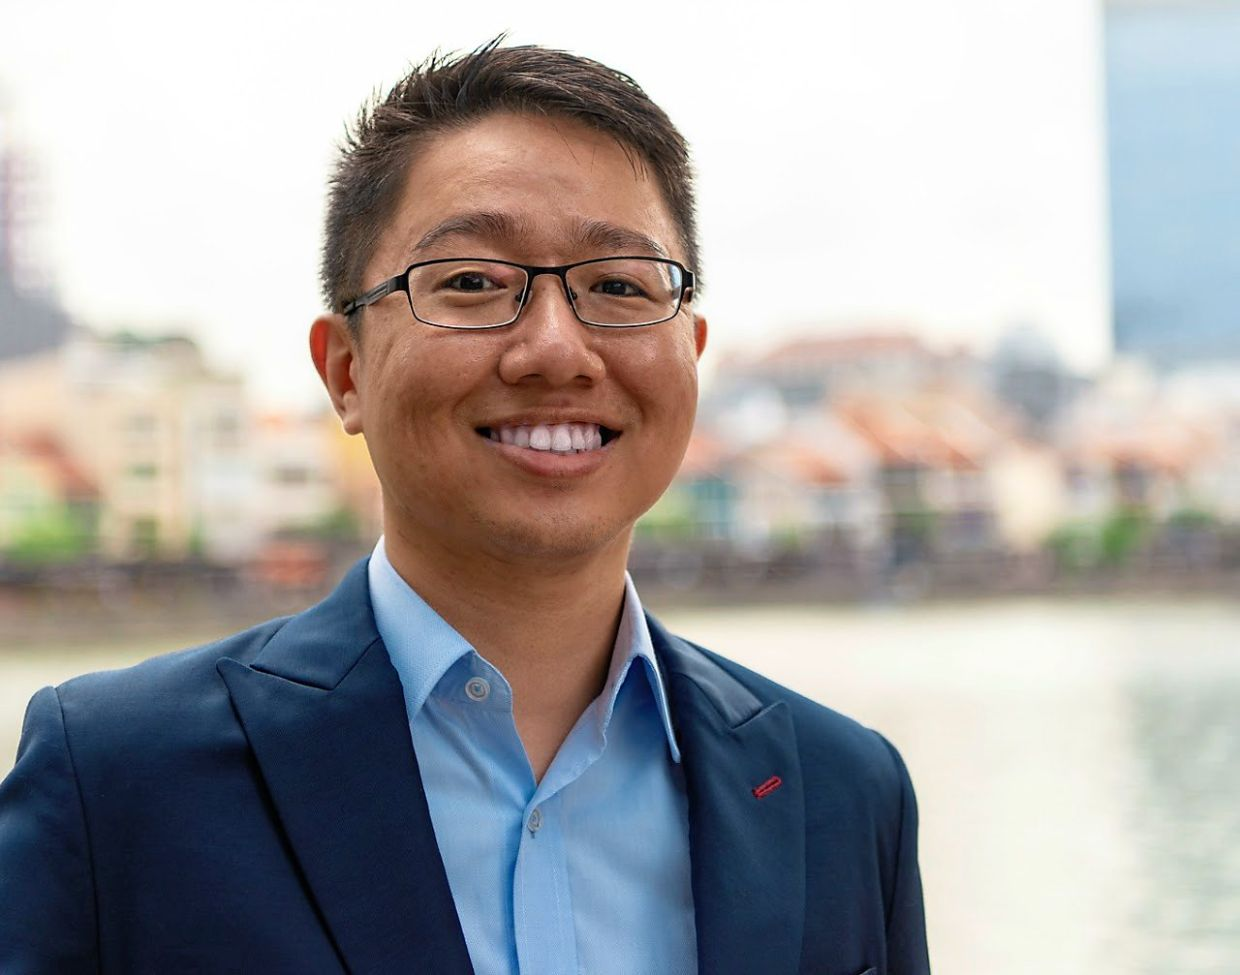 This will be Singapore's first truly 'online' election as physical rallies are not permitted, so campaigning will have to take place over social media, points out Ong. — Handout